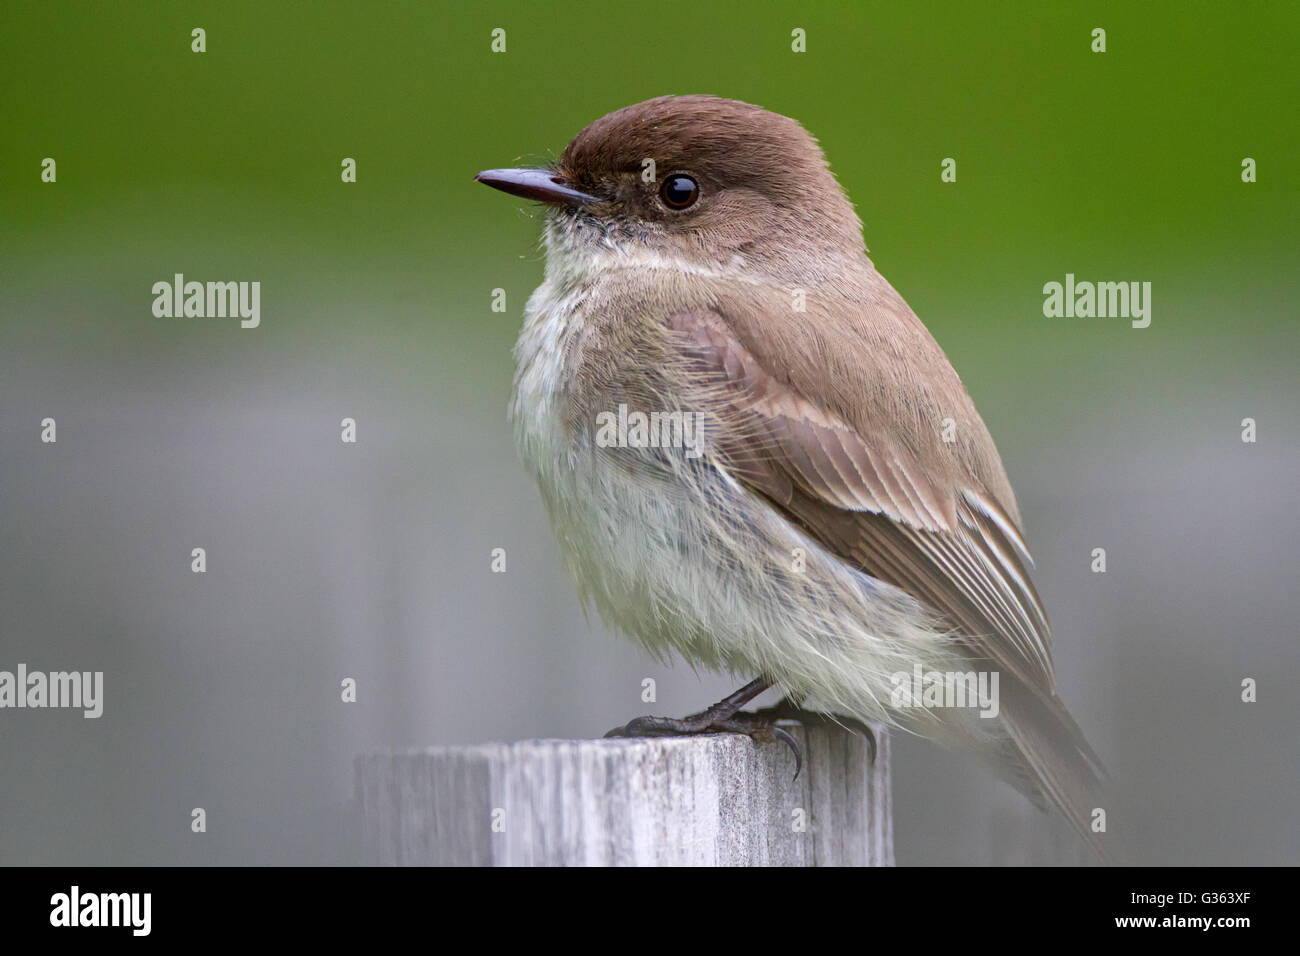 Eastern Phoebe on a fencepost - Stock Image